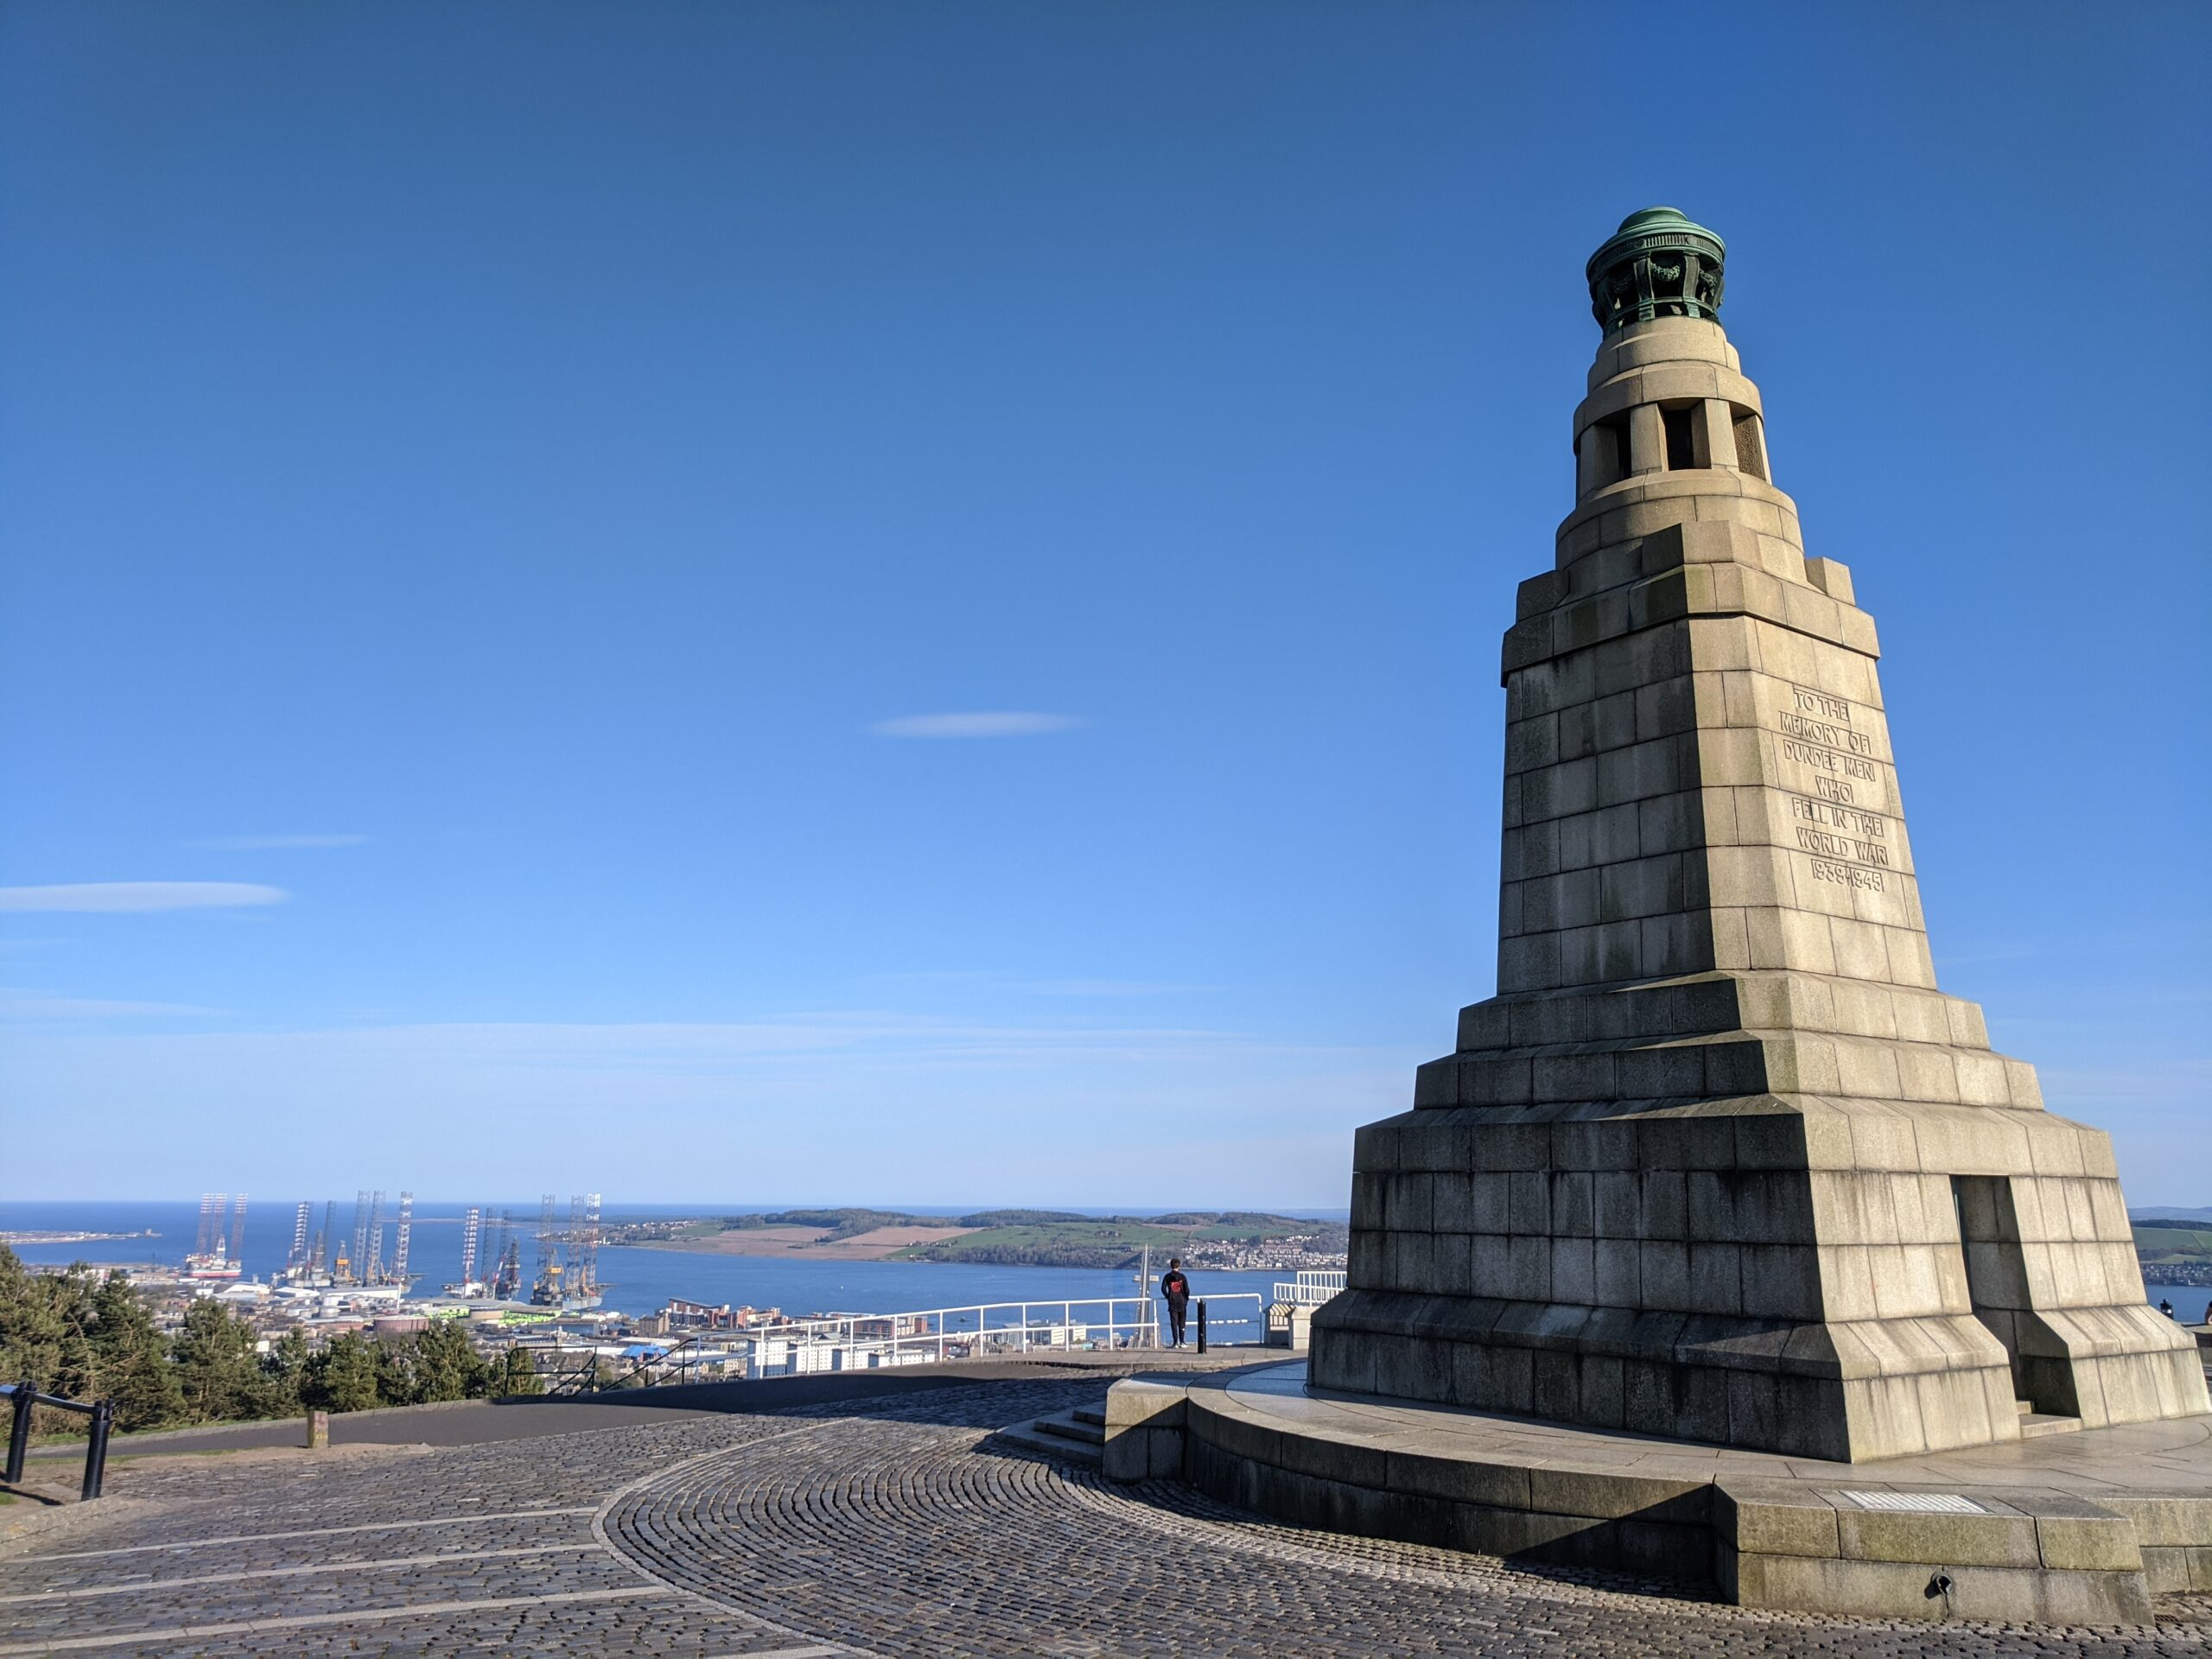 The War Memorial on The Law, Dundee